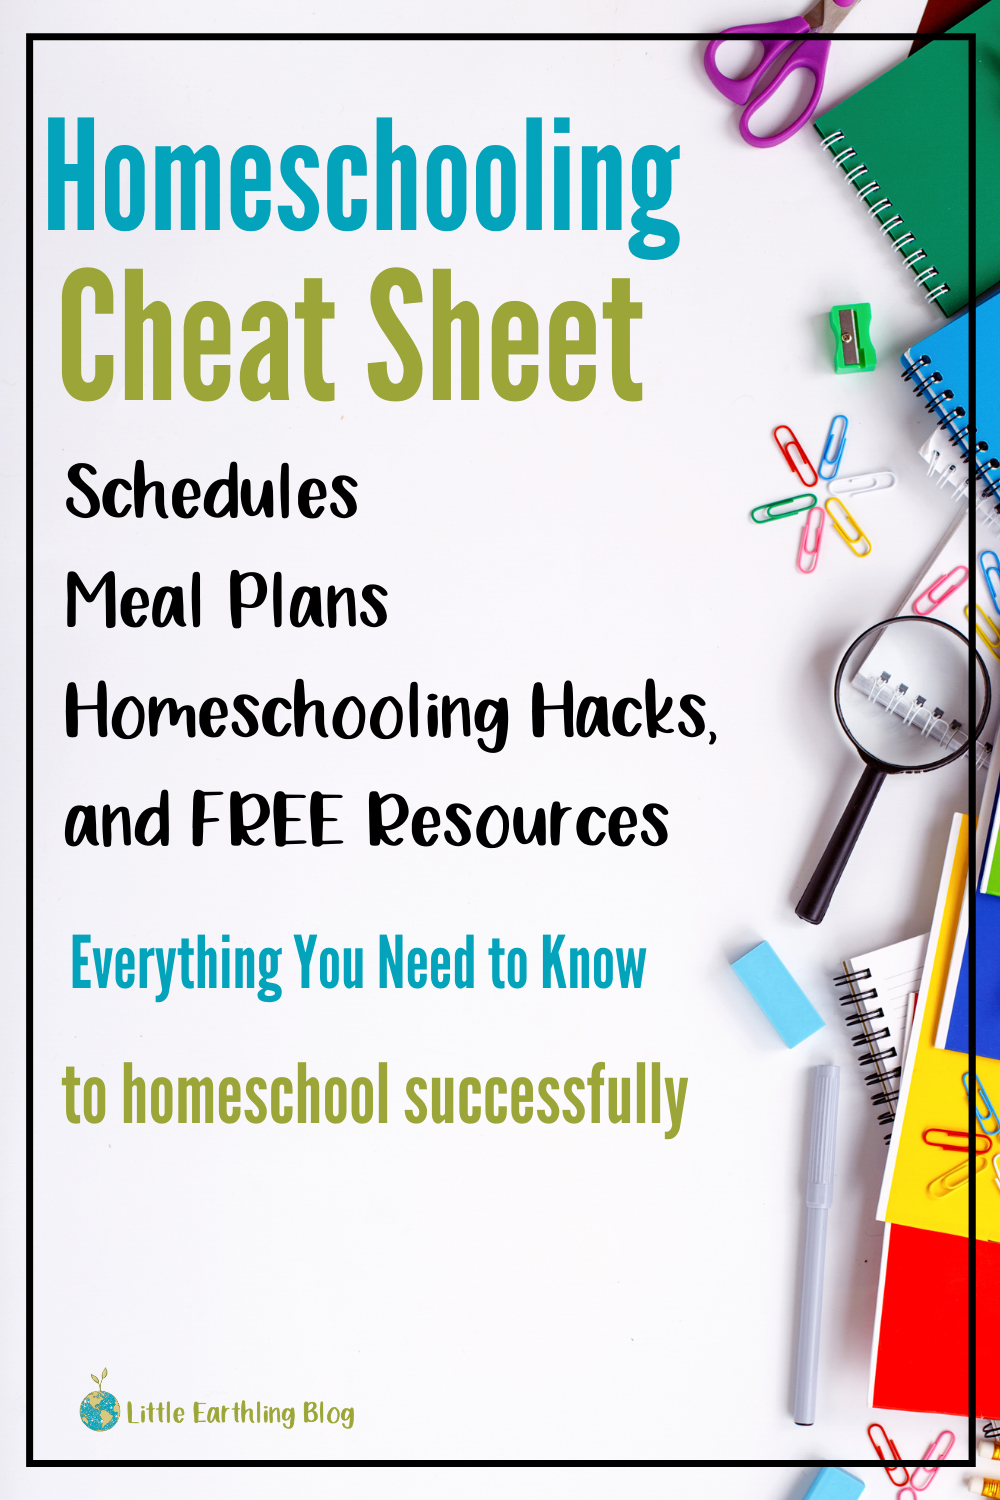 Homeschooling Cheet Sheet: Everything you need to know to homeschool successfully.